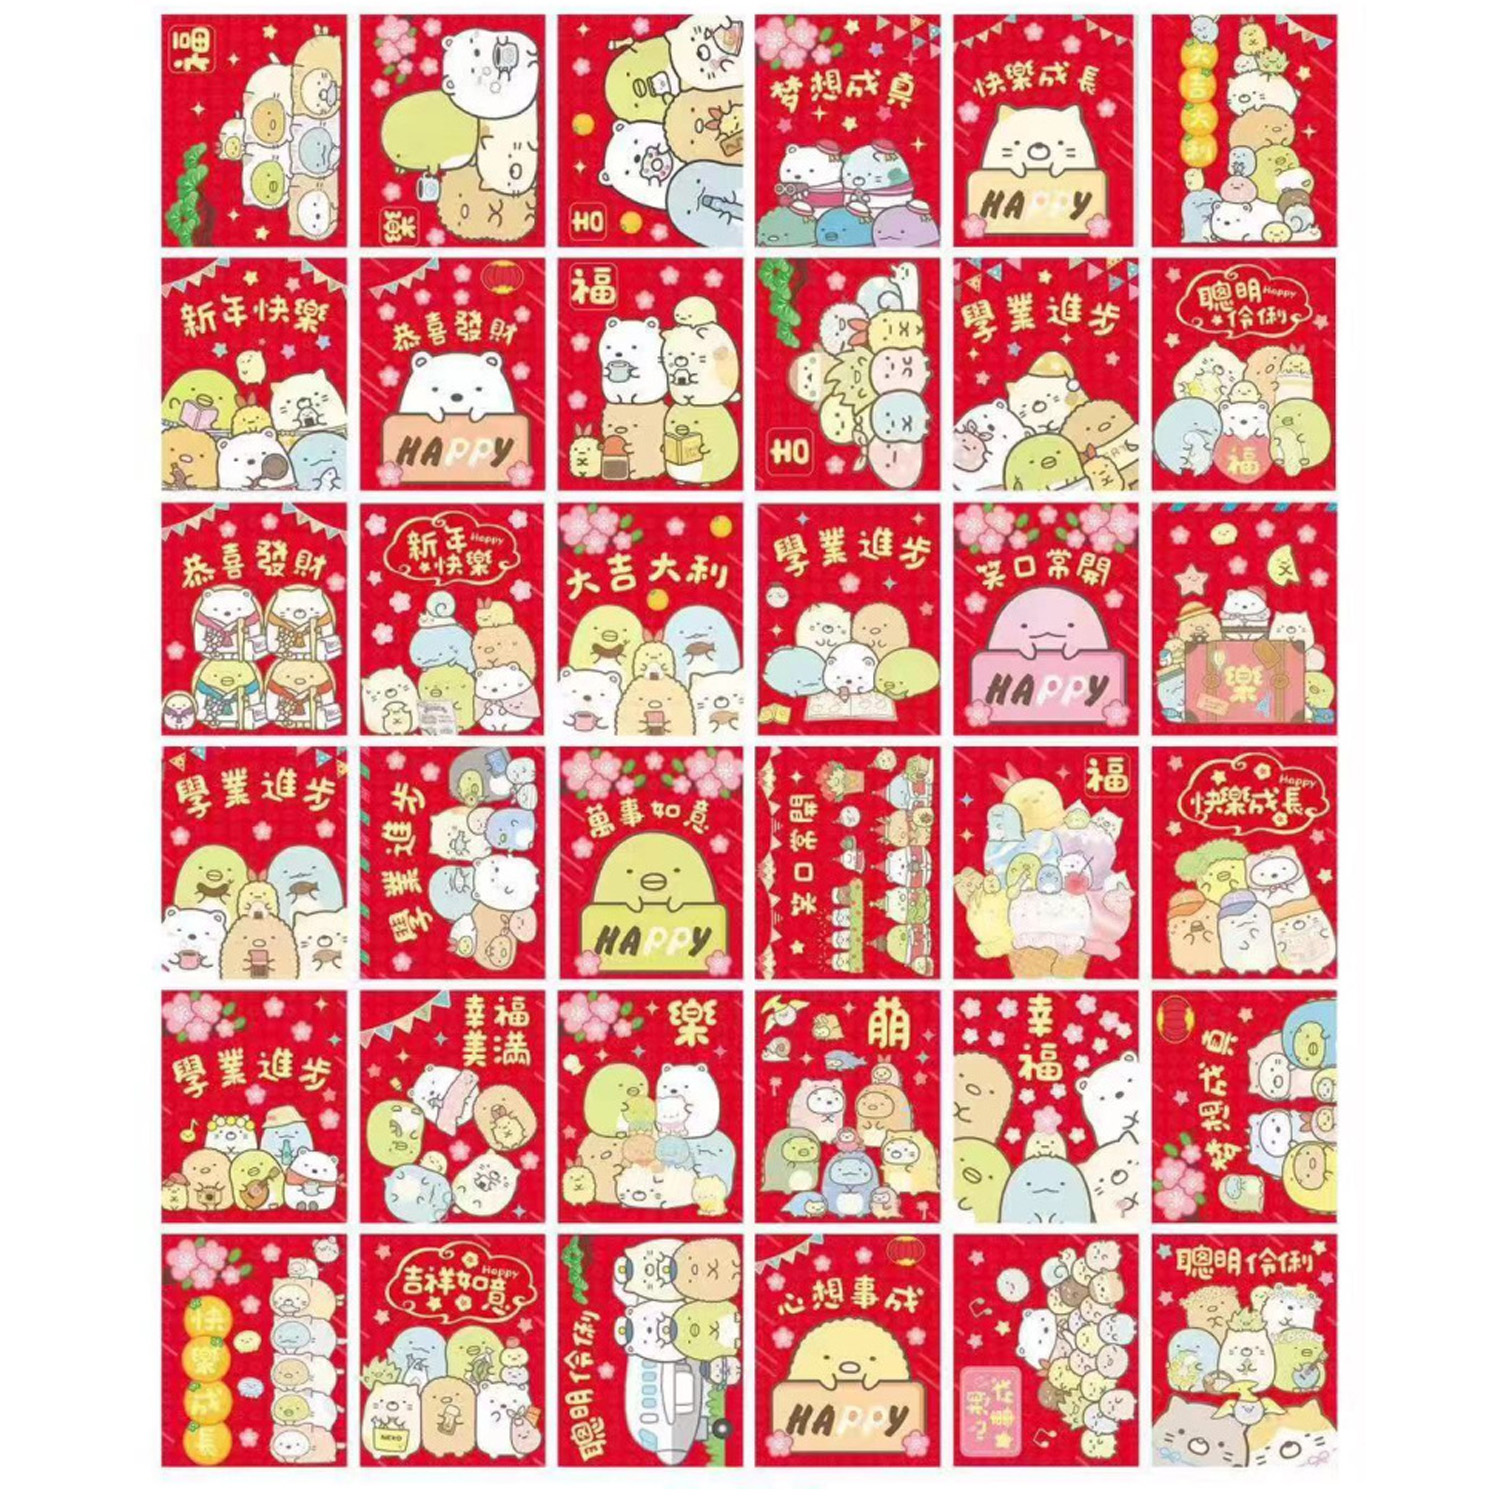 36pcs New Year Red Envelopes Lucky Envelope 2020 Year Of Festival Money Packets For Spring Festival Lunar New Year